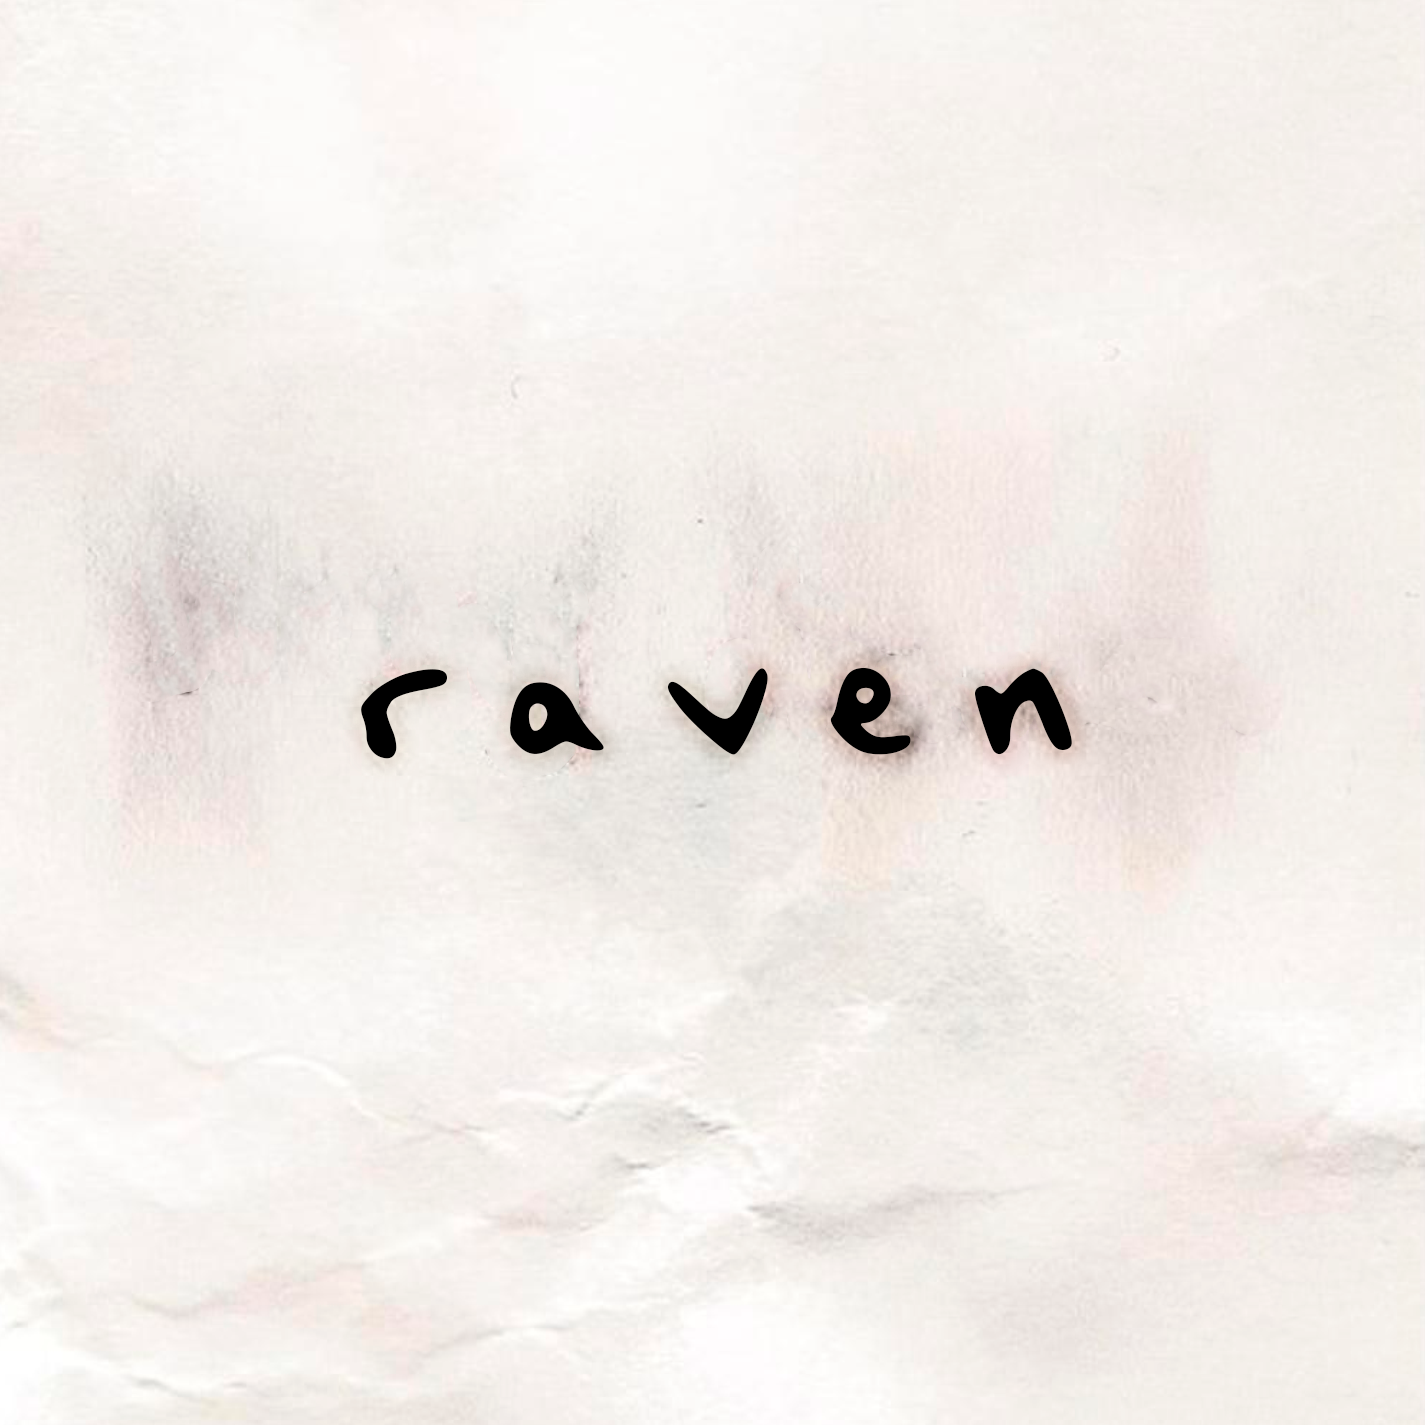 Raven (song)